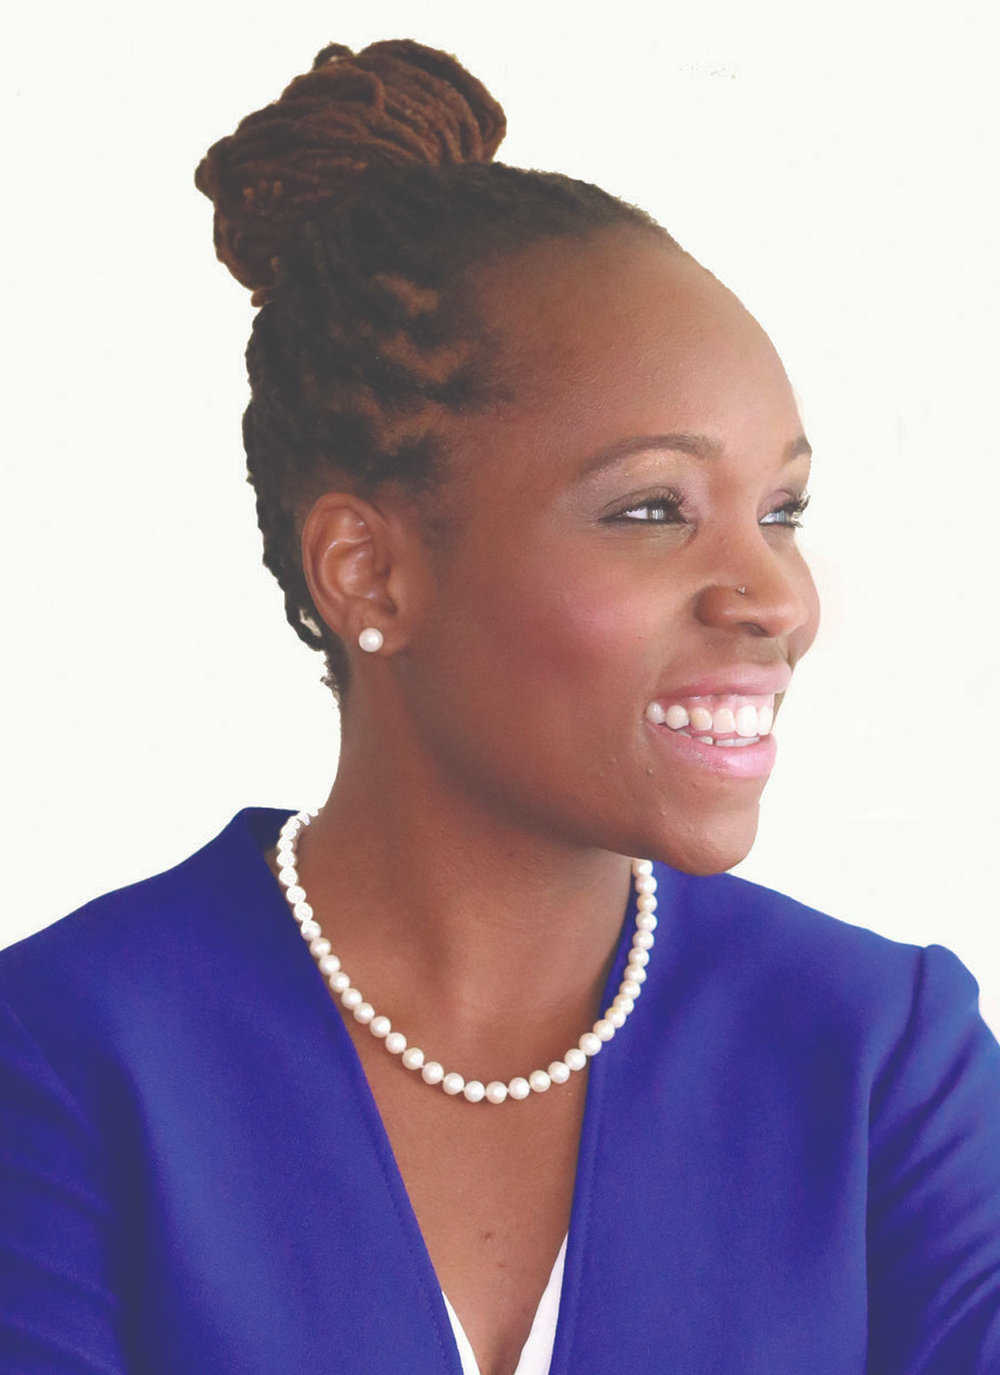 Nicole J. Johnson - Came in second place with 22.1% of the vote.More on Nicole J. Johnson here.